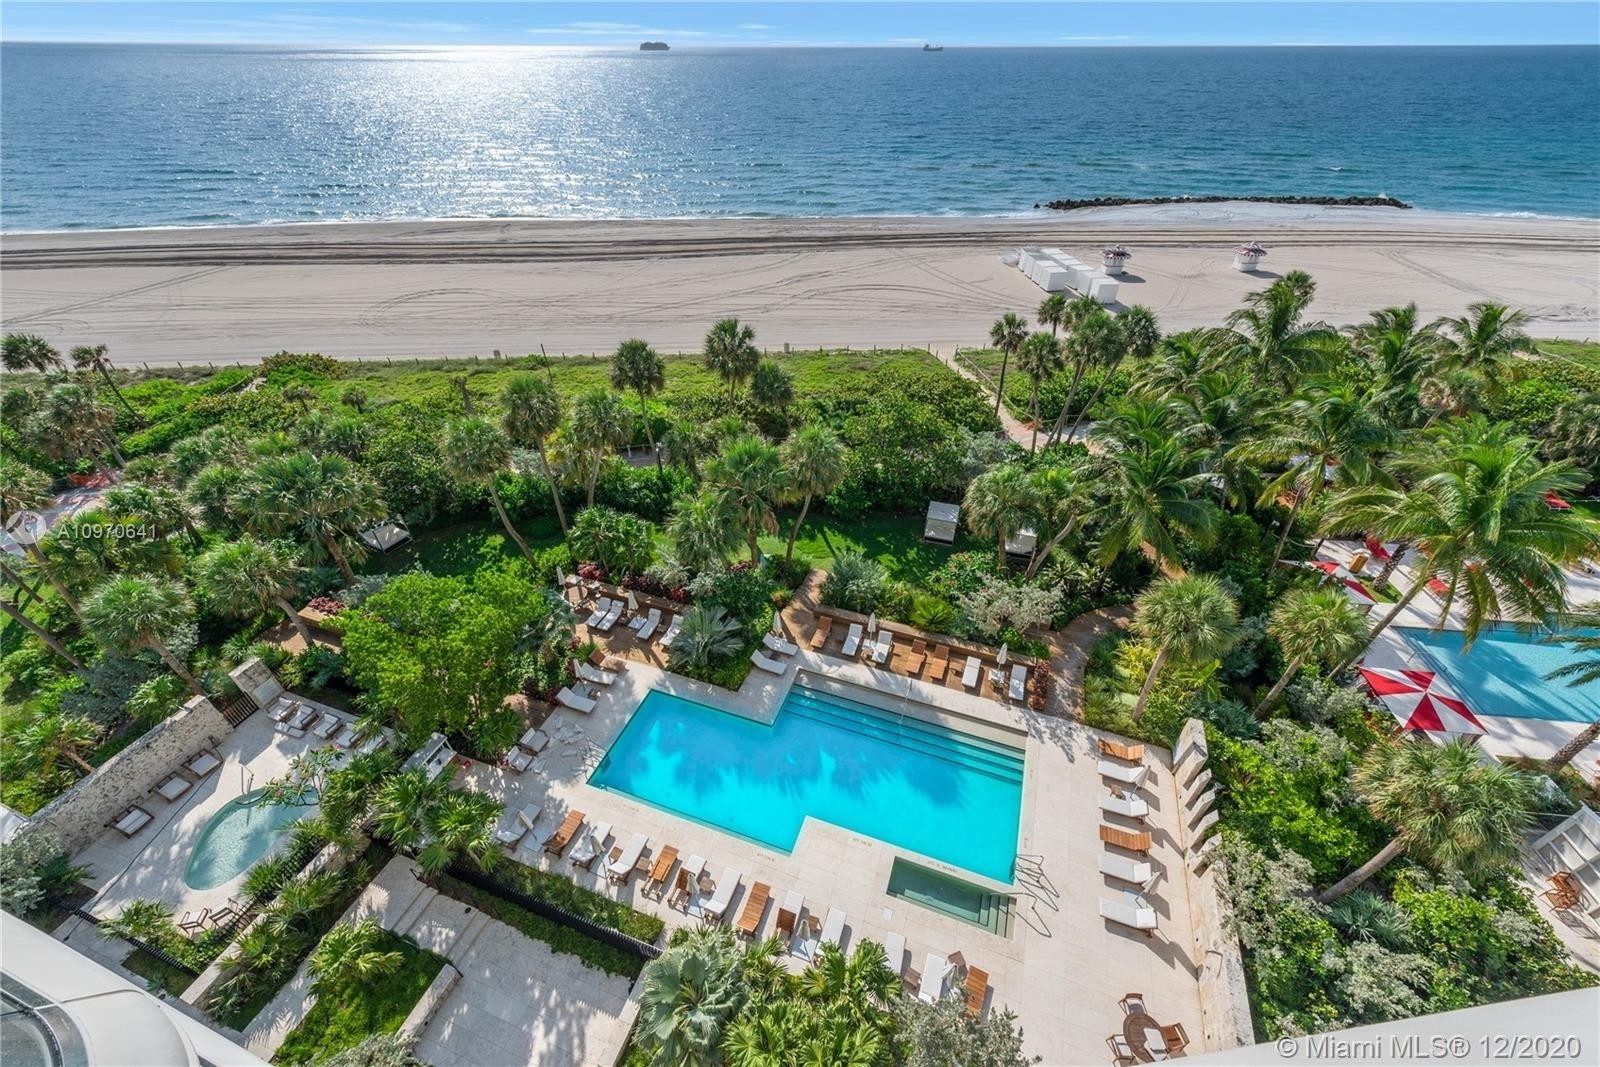 5. Condominiums for Sale at 3315 Collins Ave , 8B Ocean Front, Miami Beach, FL 33140